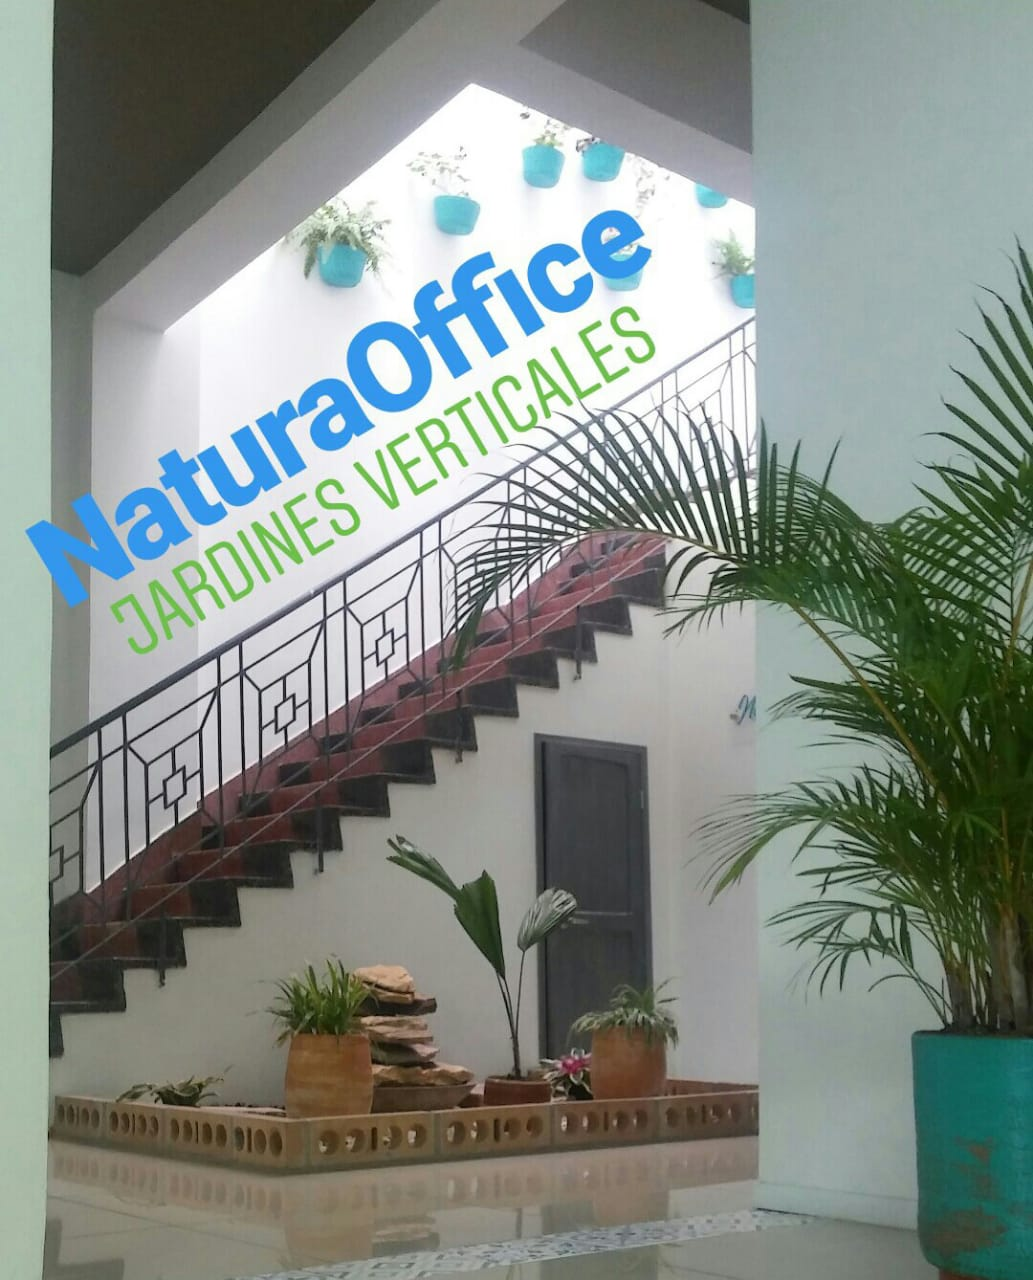 NaturaOffice, Cali